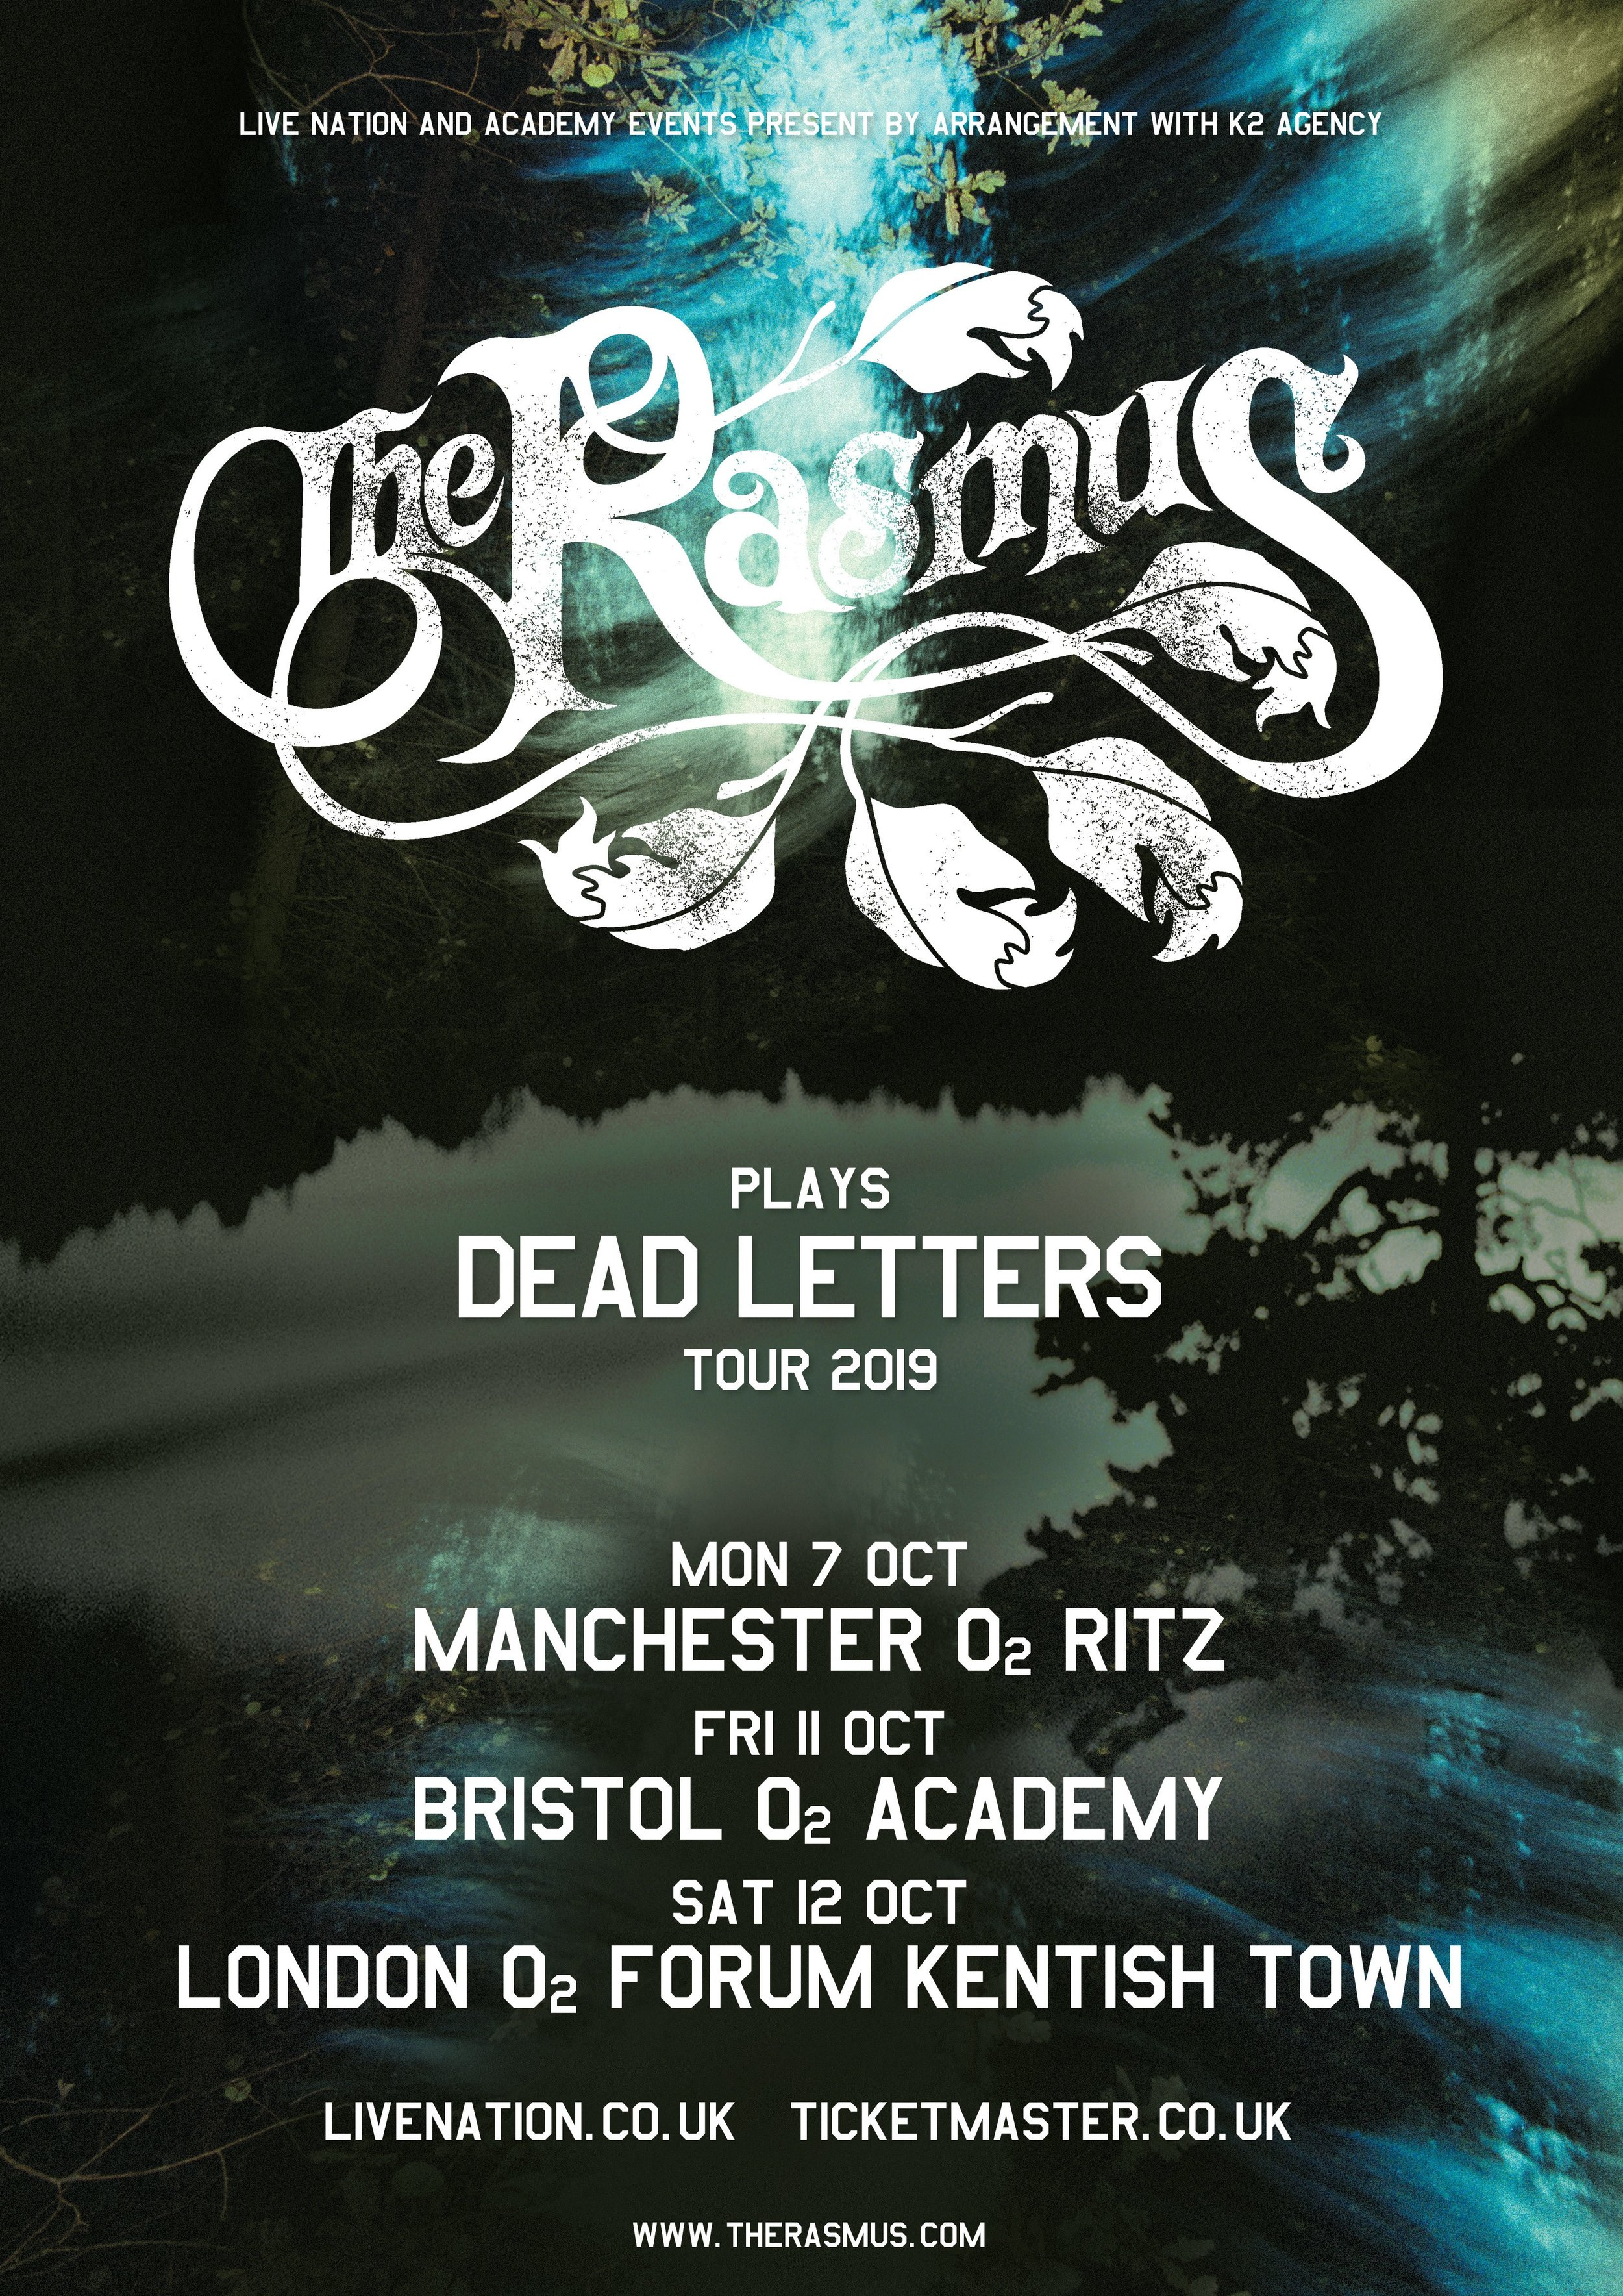 THE RASMUS return to the UK to play seminal Dead Letters